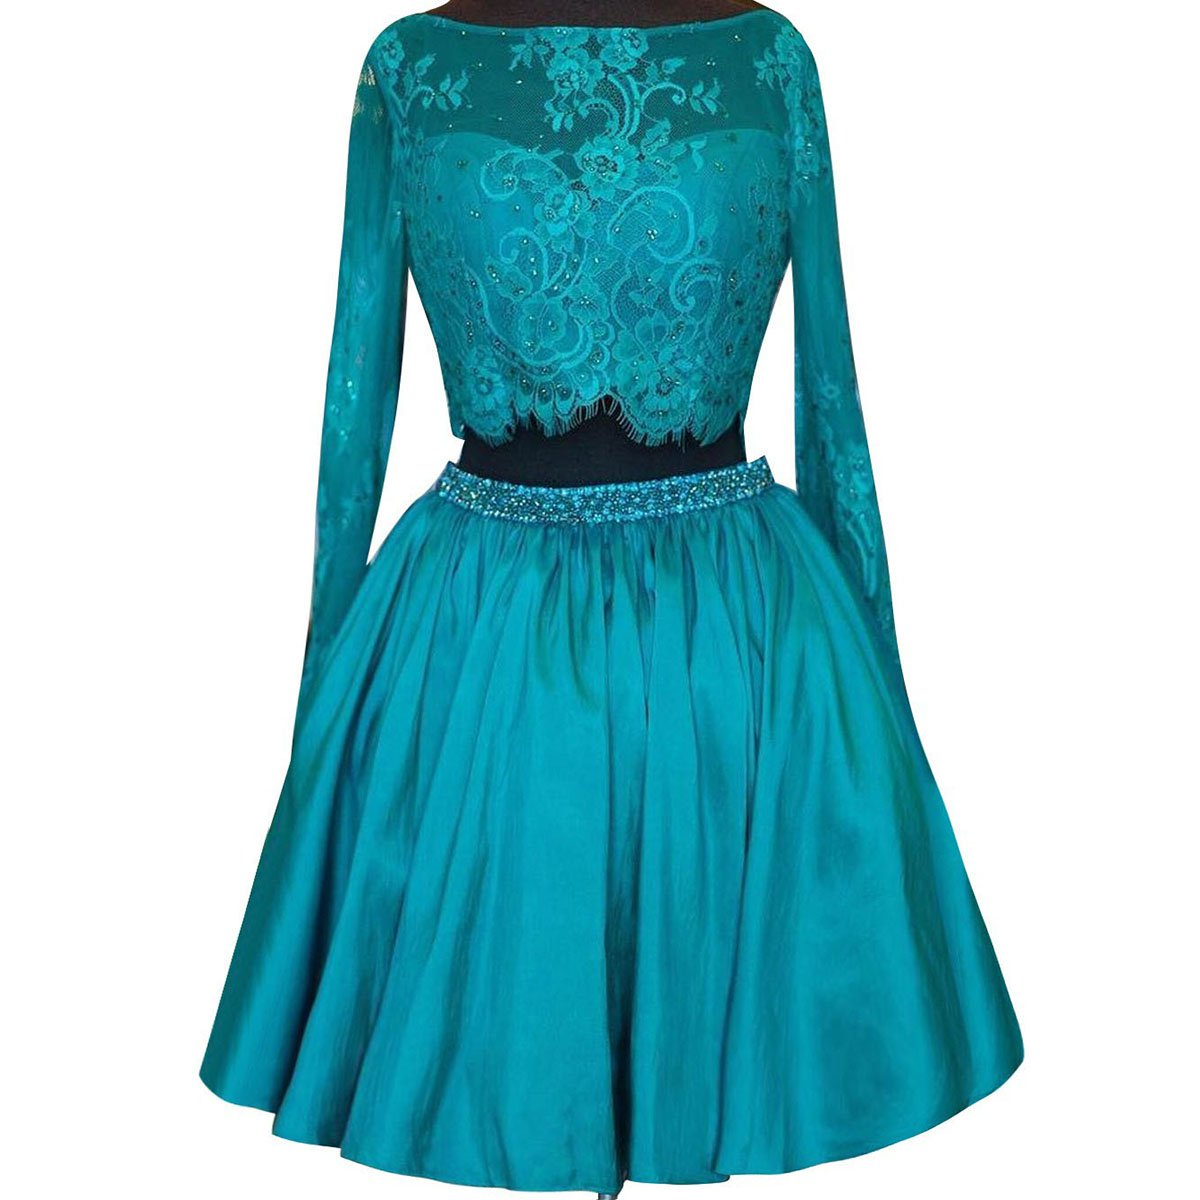 Two Piece Lace Homecoming Dress, Long Sleeve Homecoming Dress with Beaded Belt